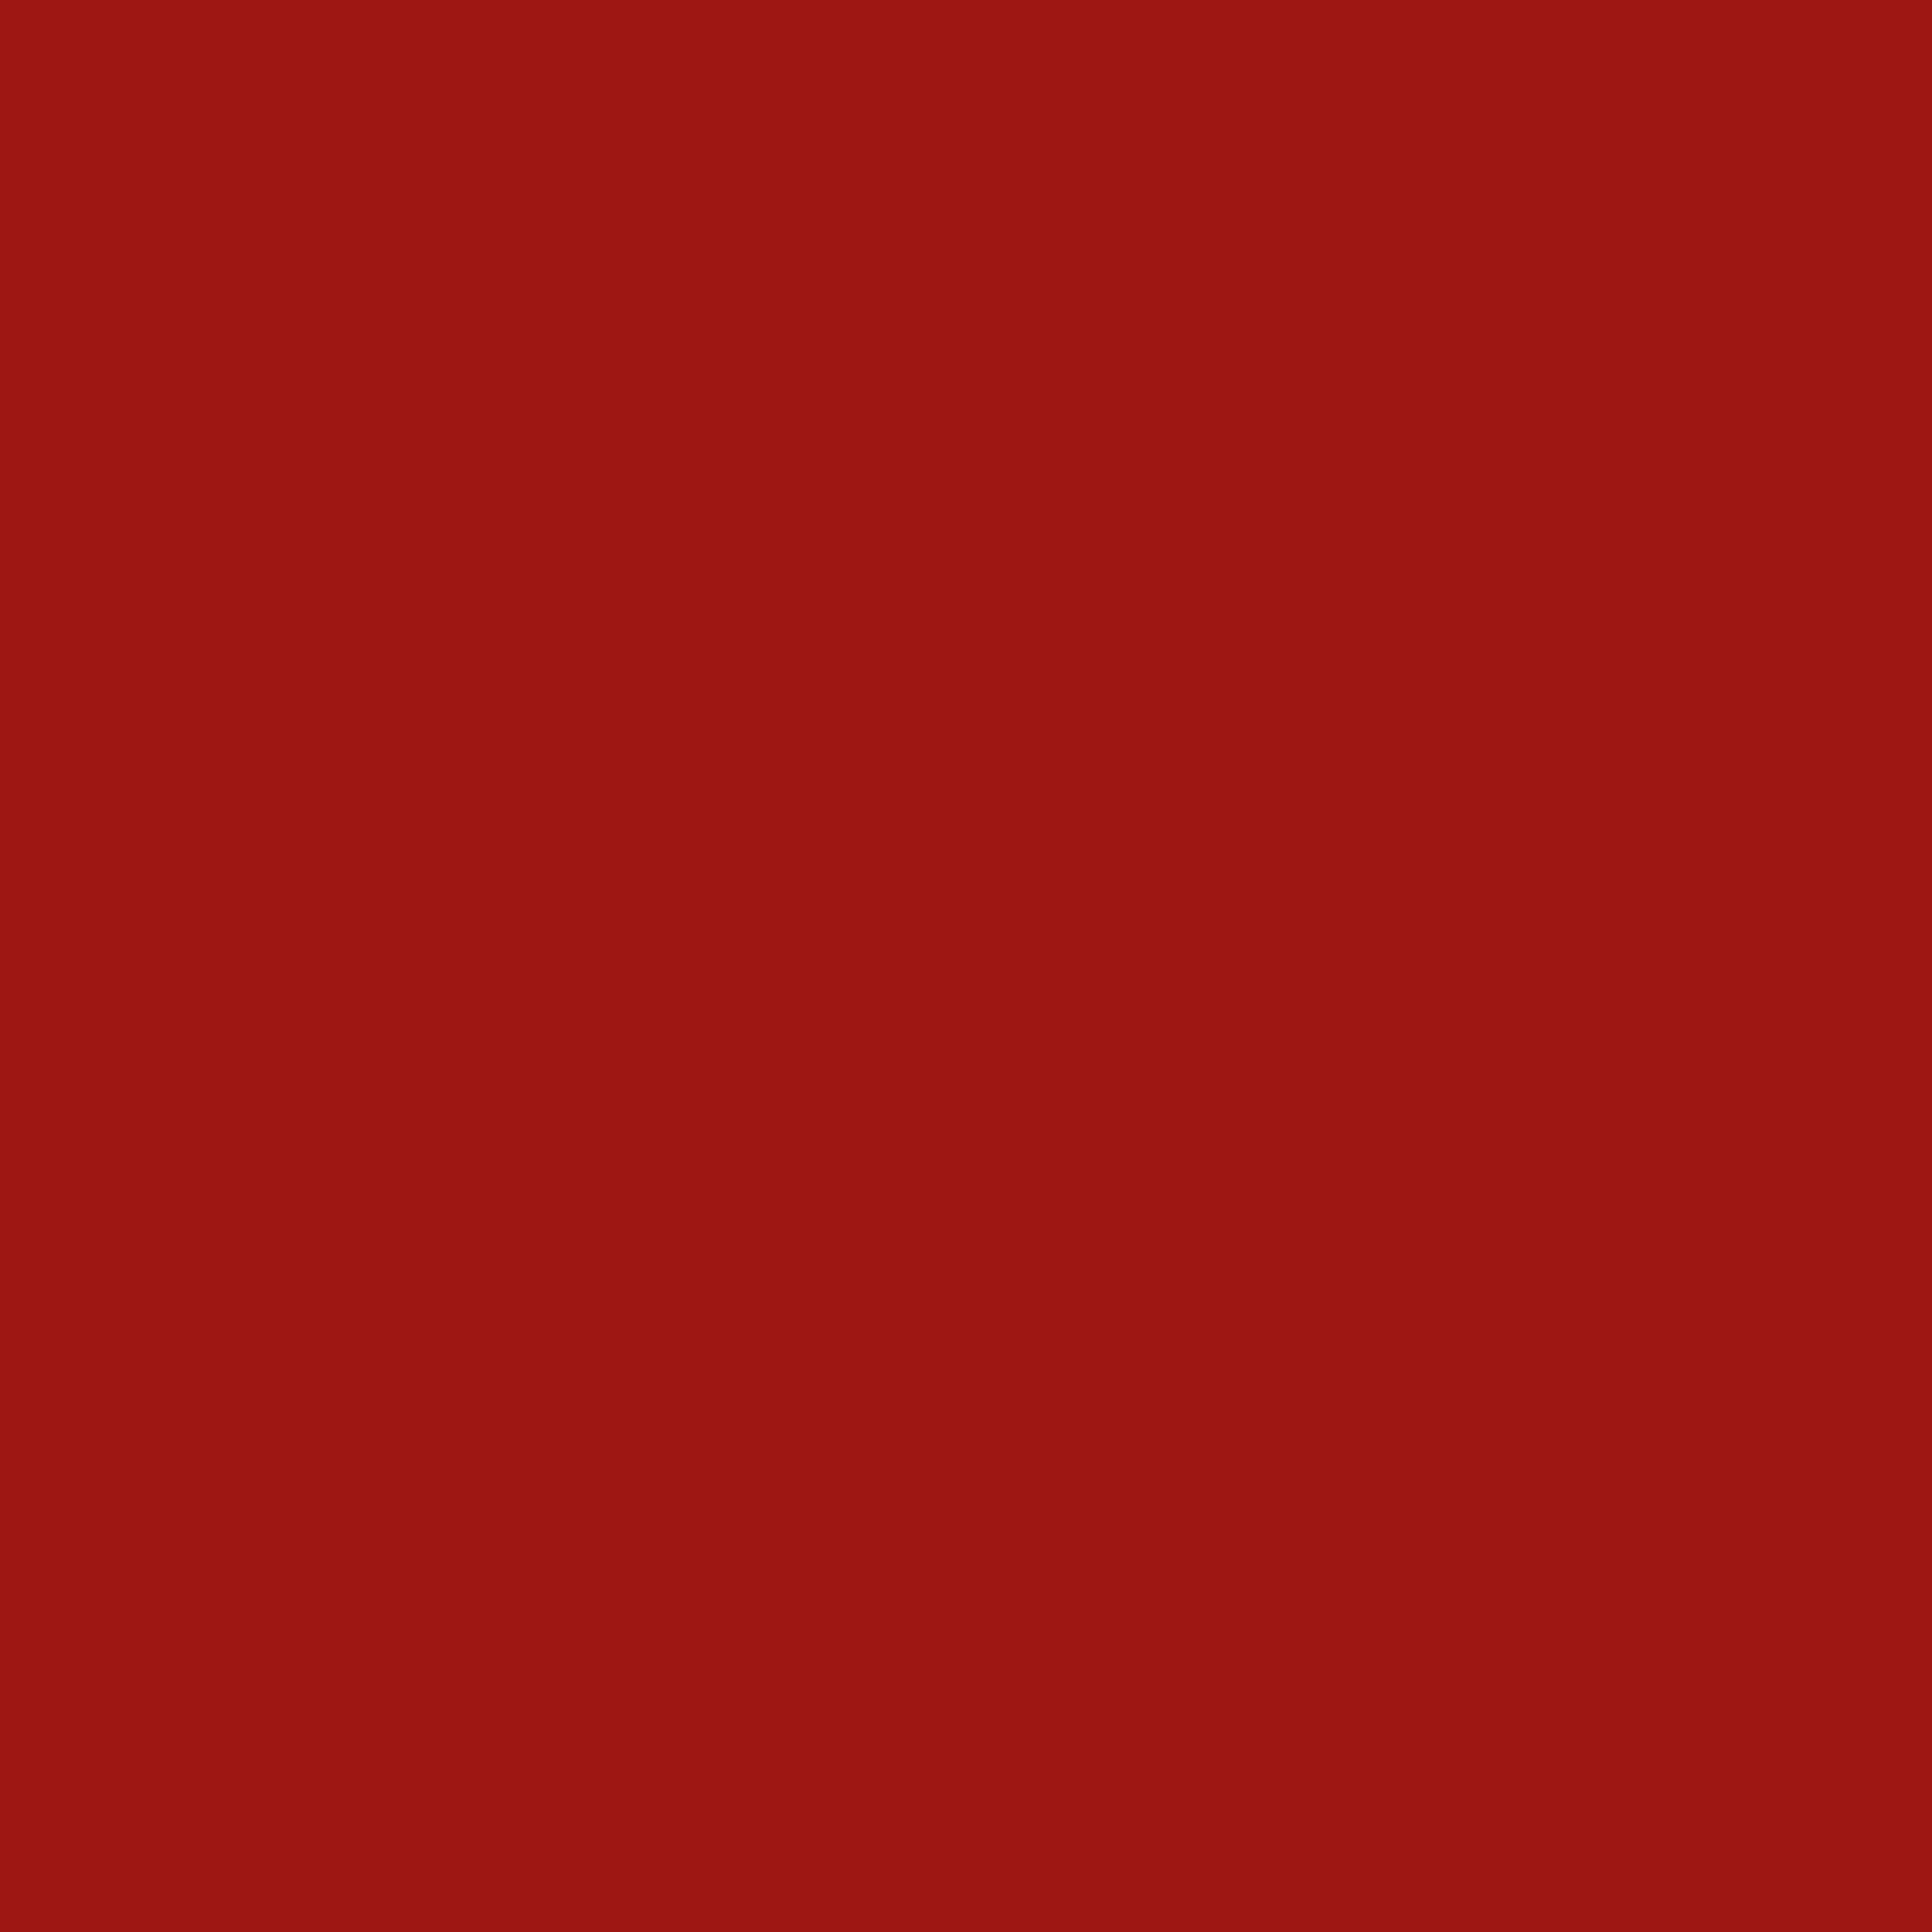 114 Red